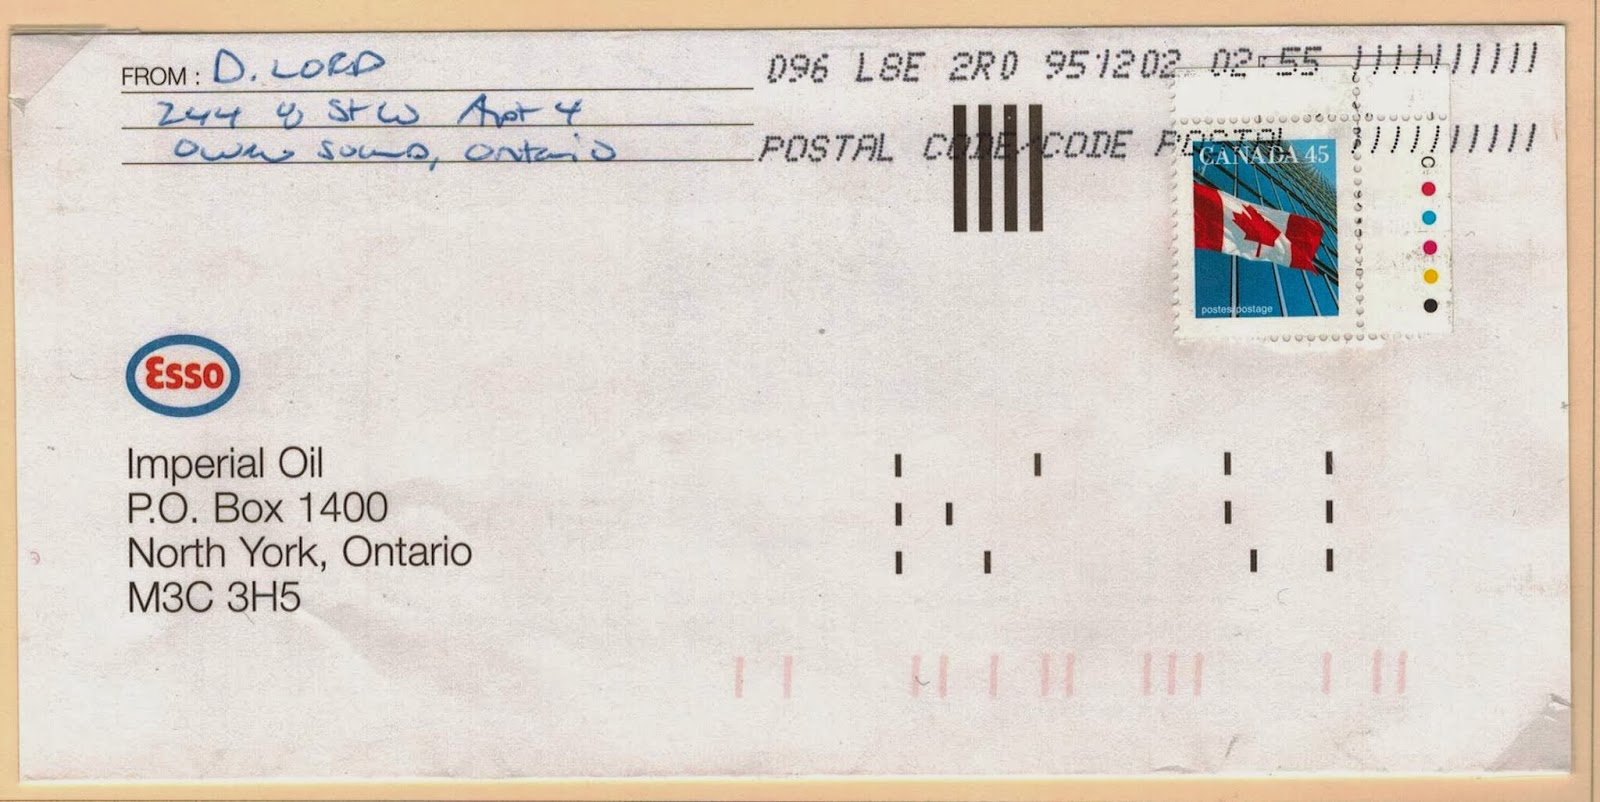 ... Letter Postage To Canada. View Original . [Updated on 10/1/2015 at 07